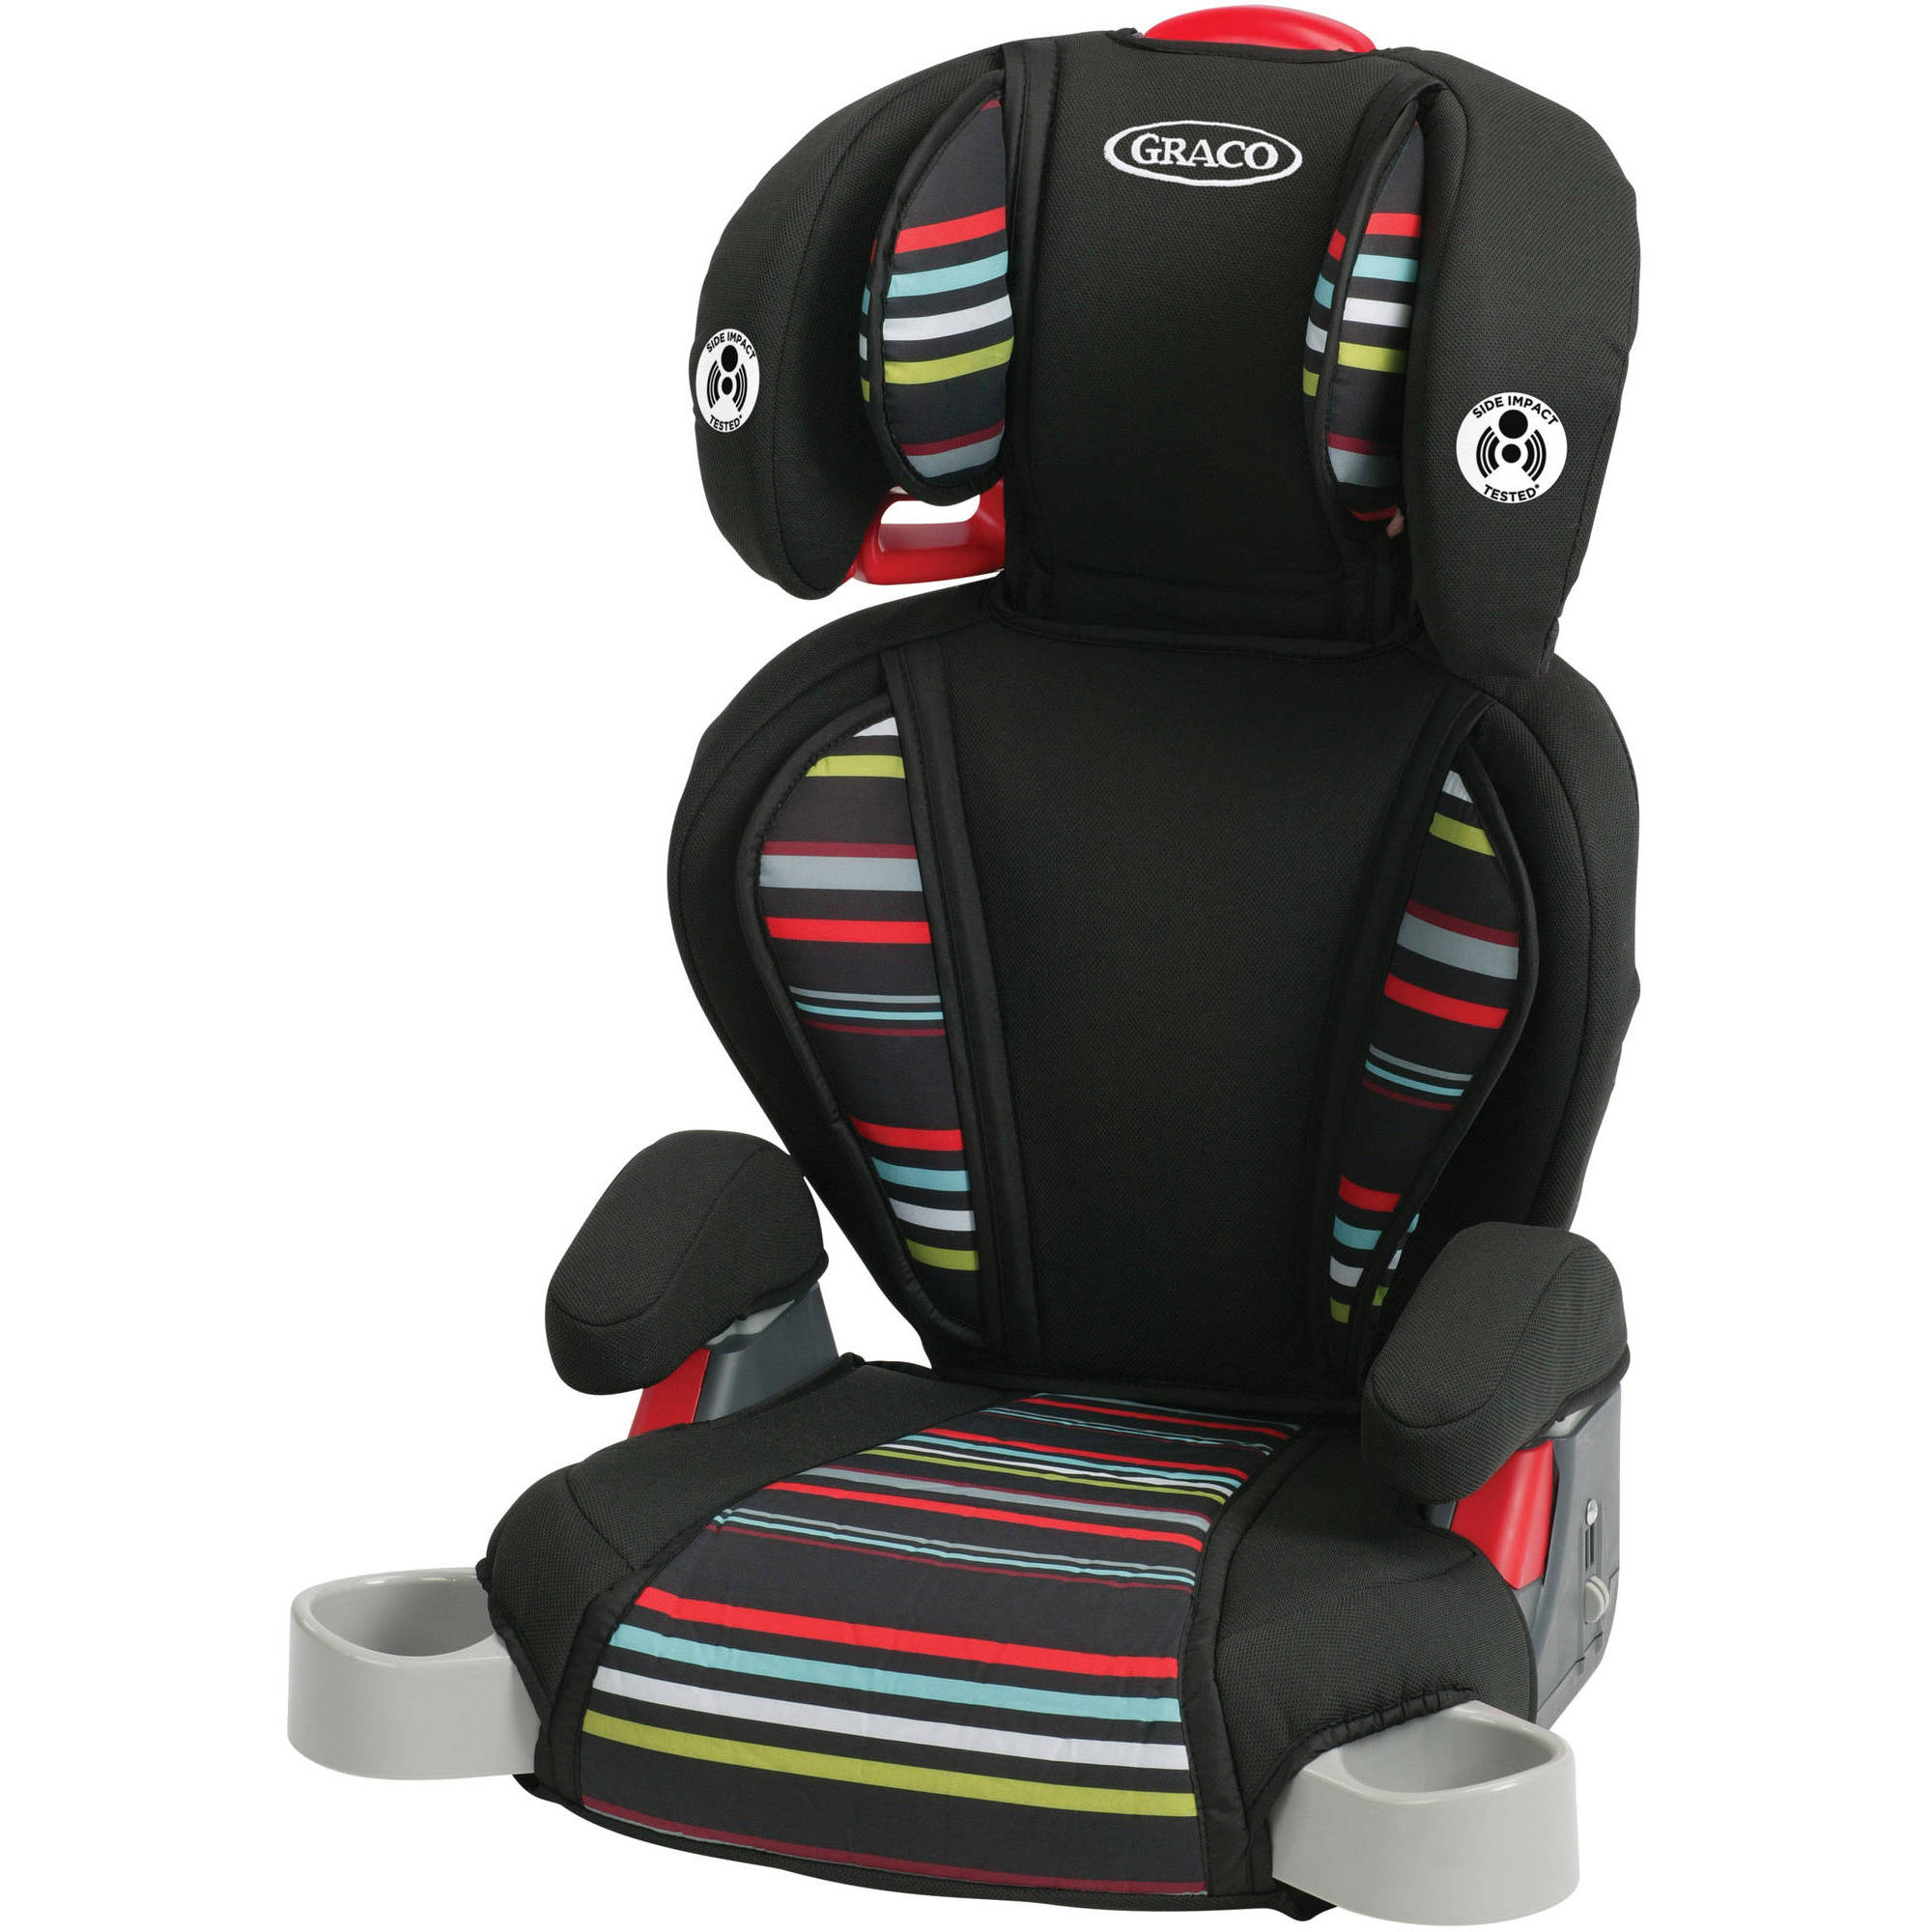 Graco Highback TurboBooster Booster Car Seat, Choose Your Pattern